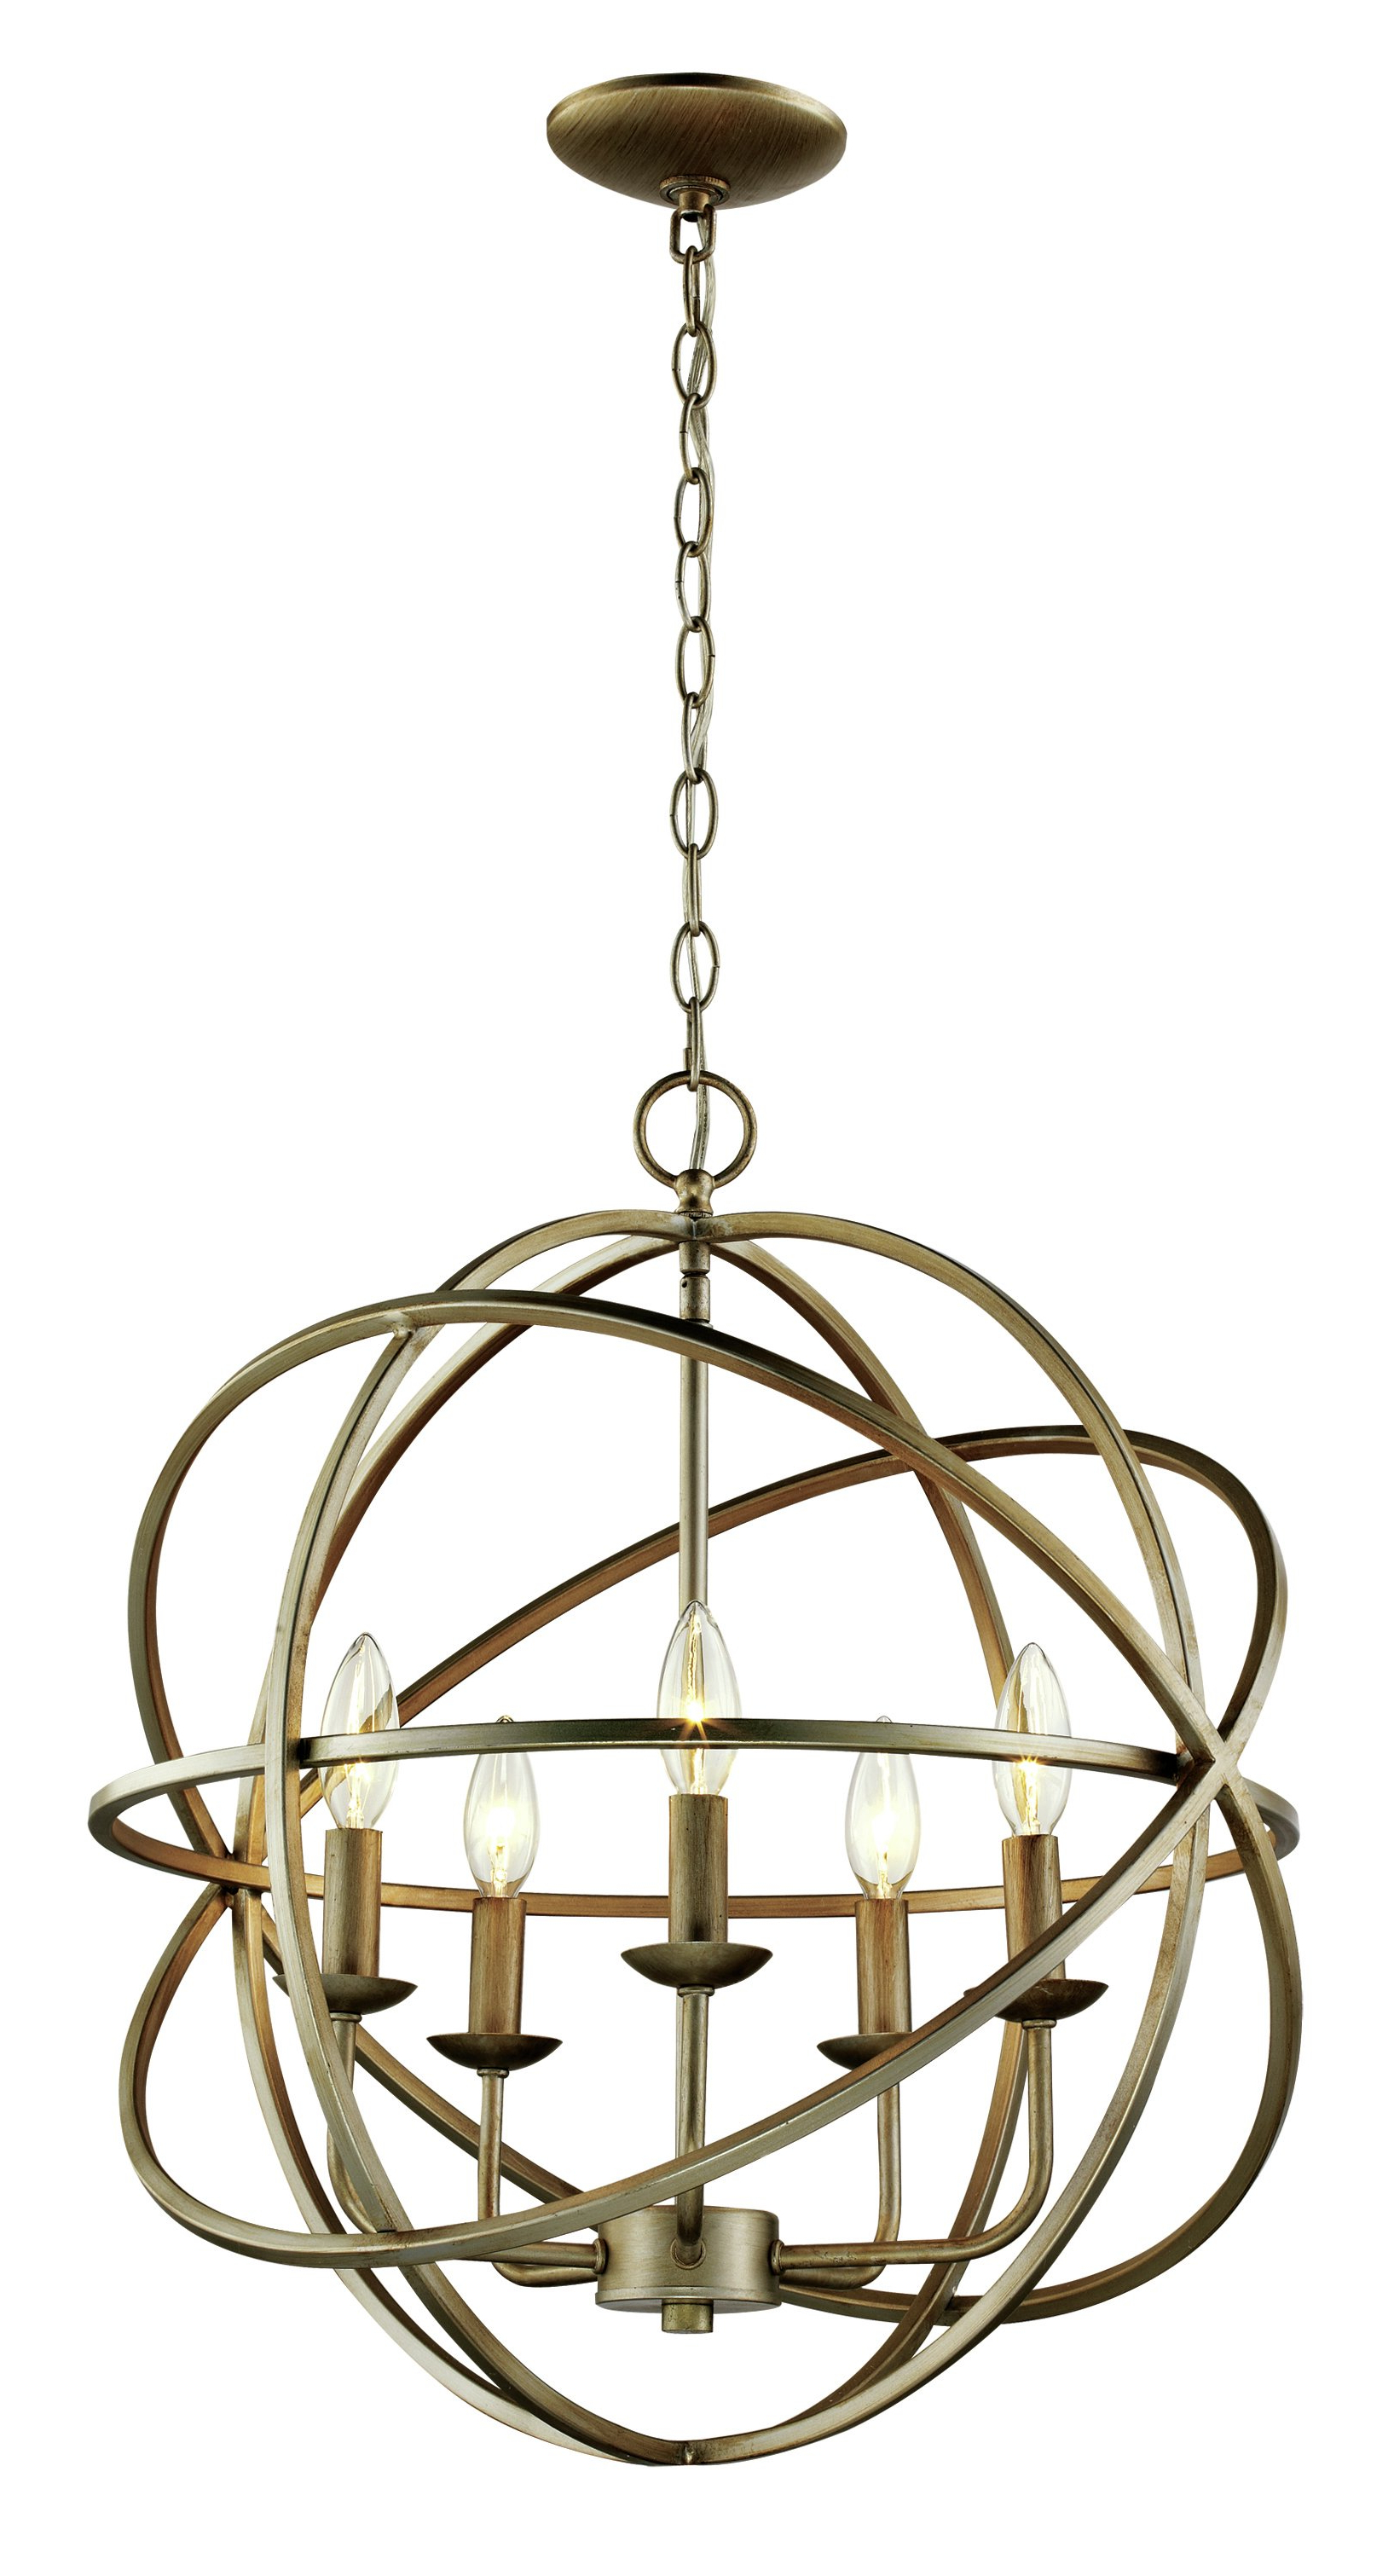 Newest Farmhouse & Rustic Geometric Chandeliers (View 20 of 25)